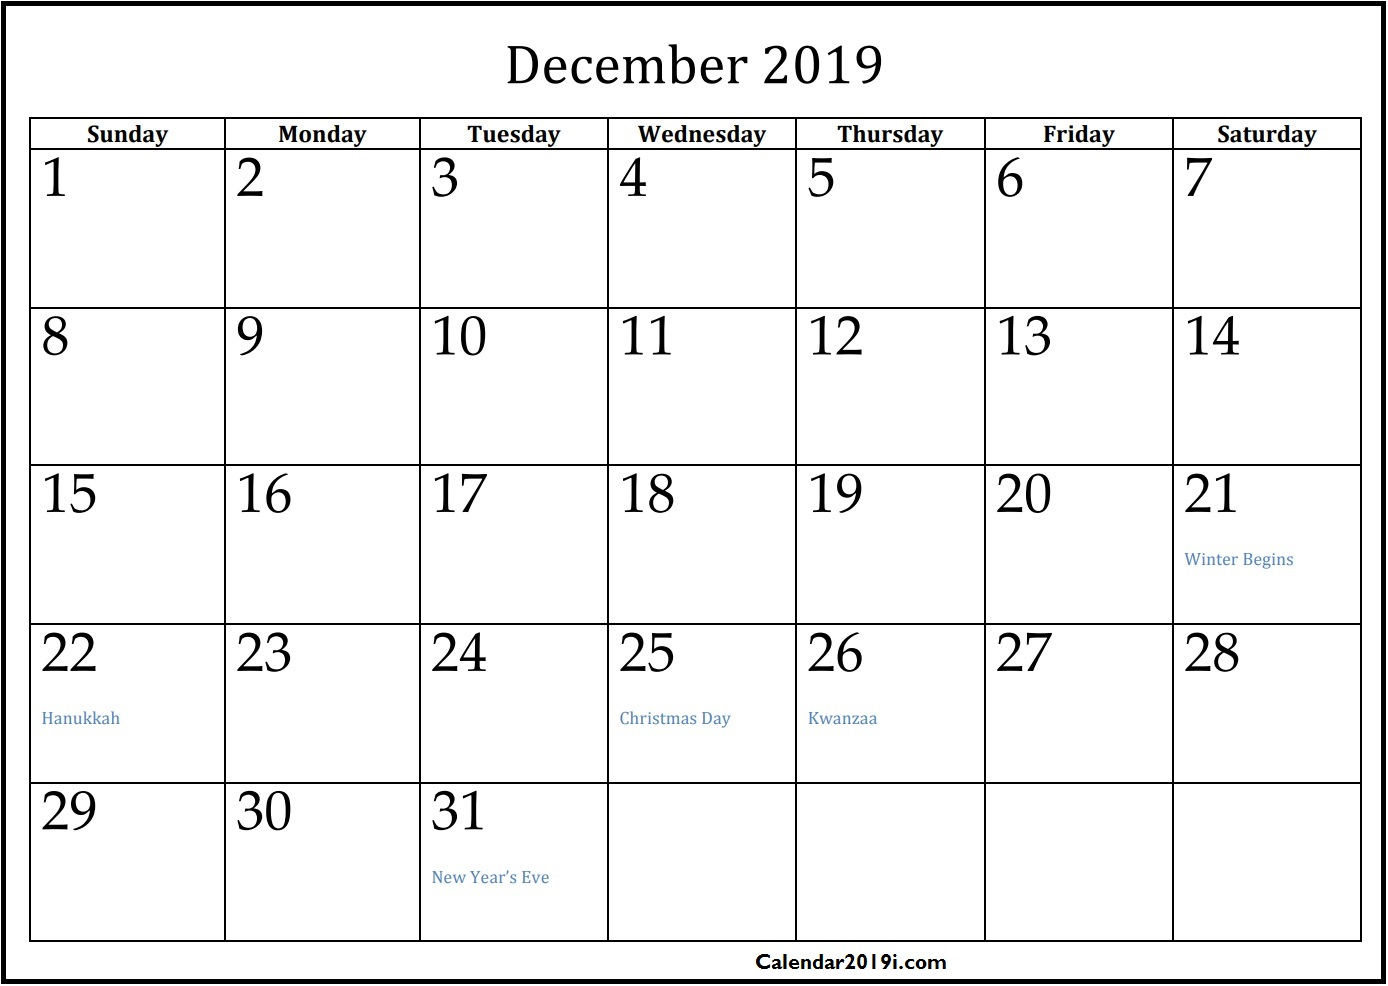 Blank Calendar December 2019 with Holidays